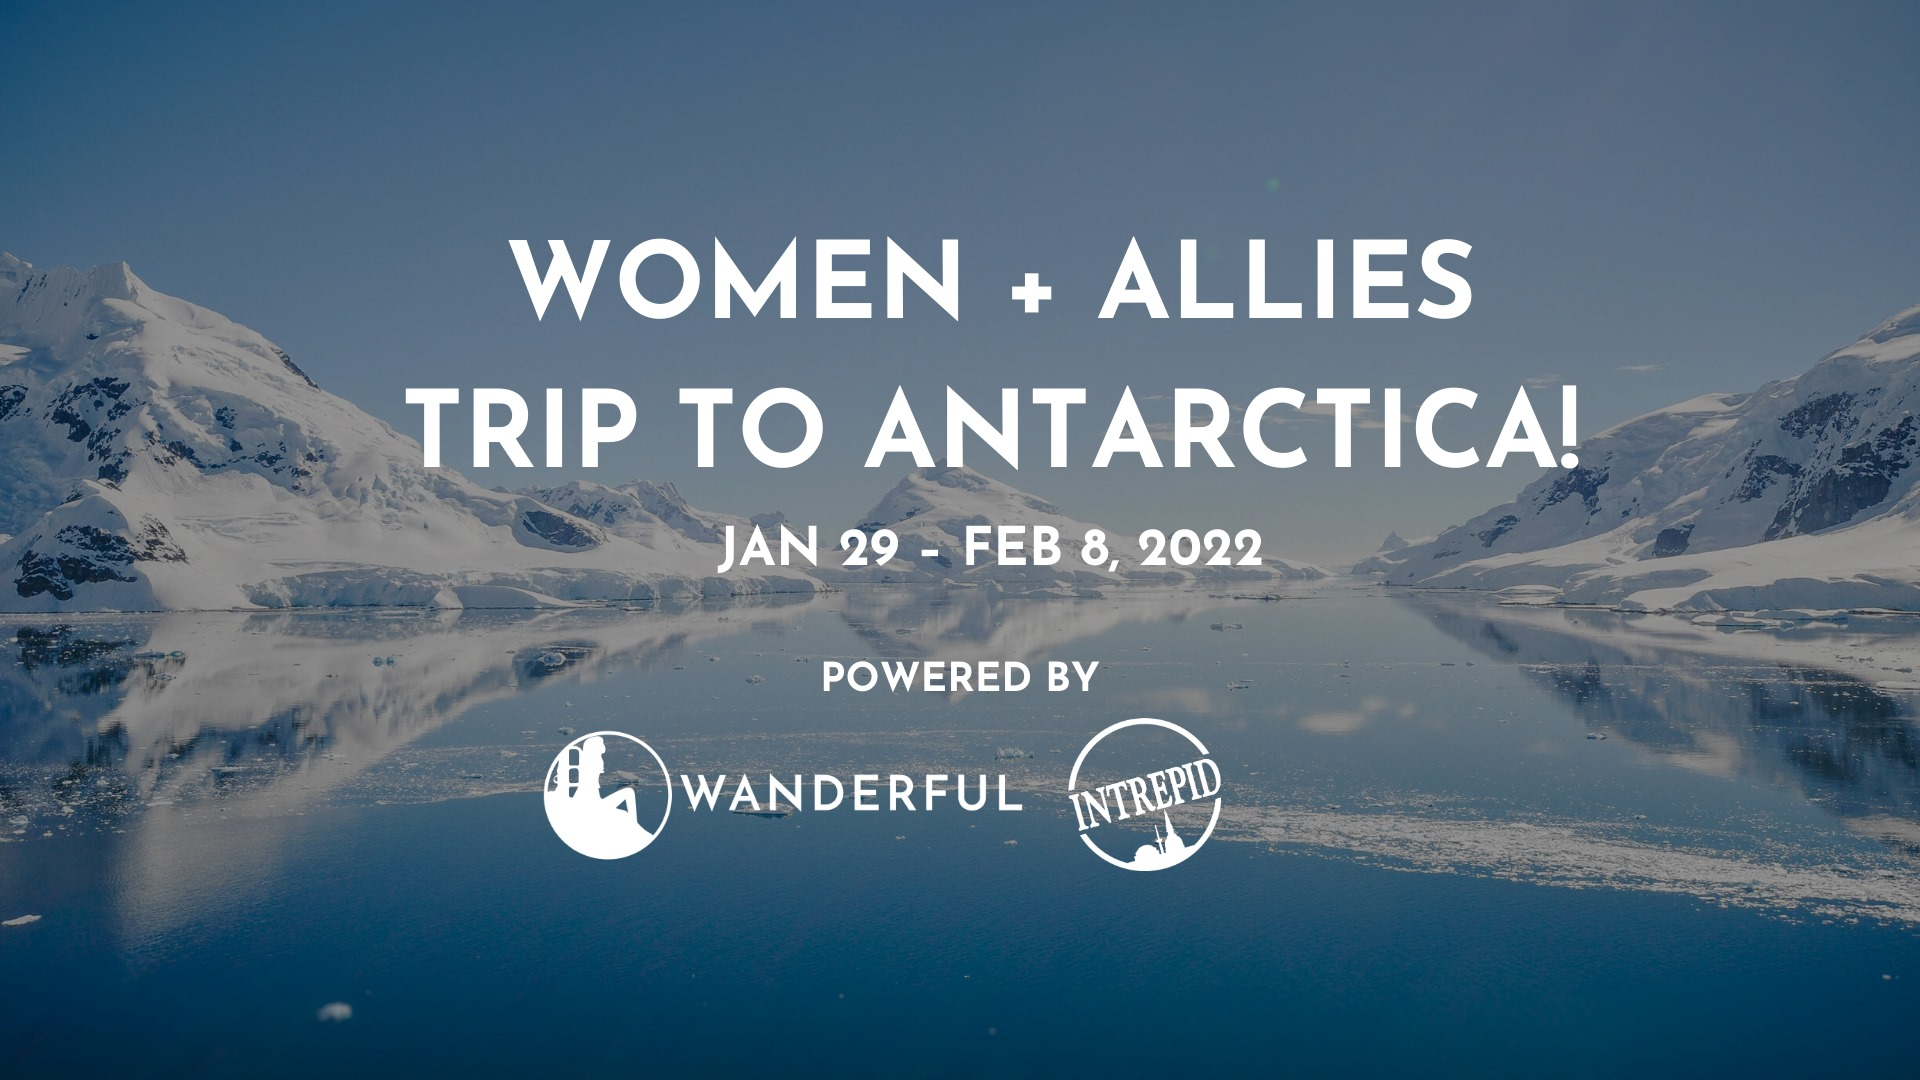 Wanderful trip to Antarctica